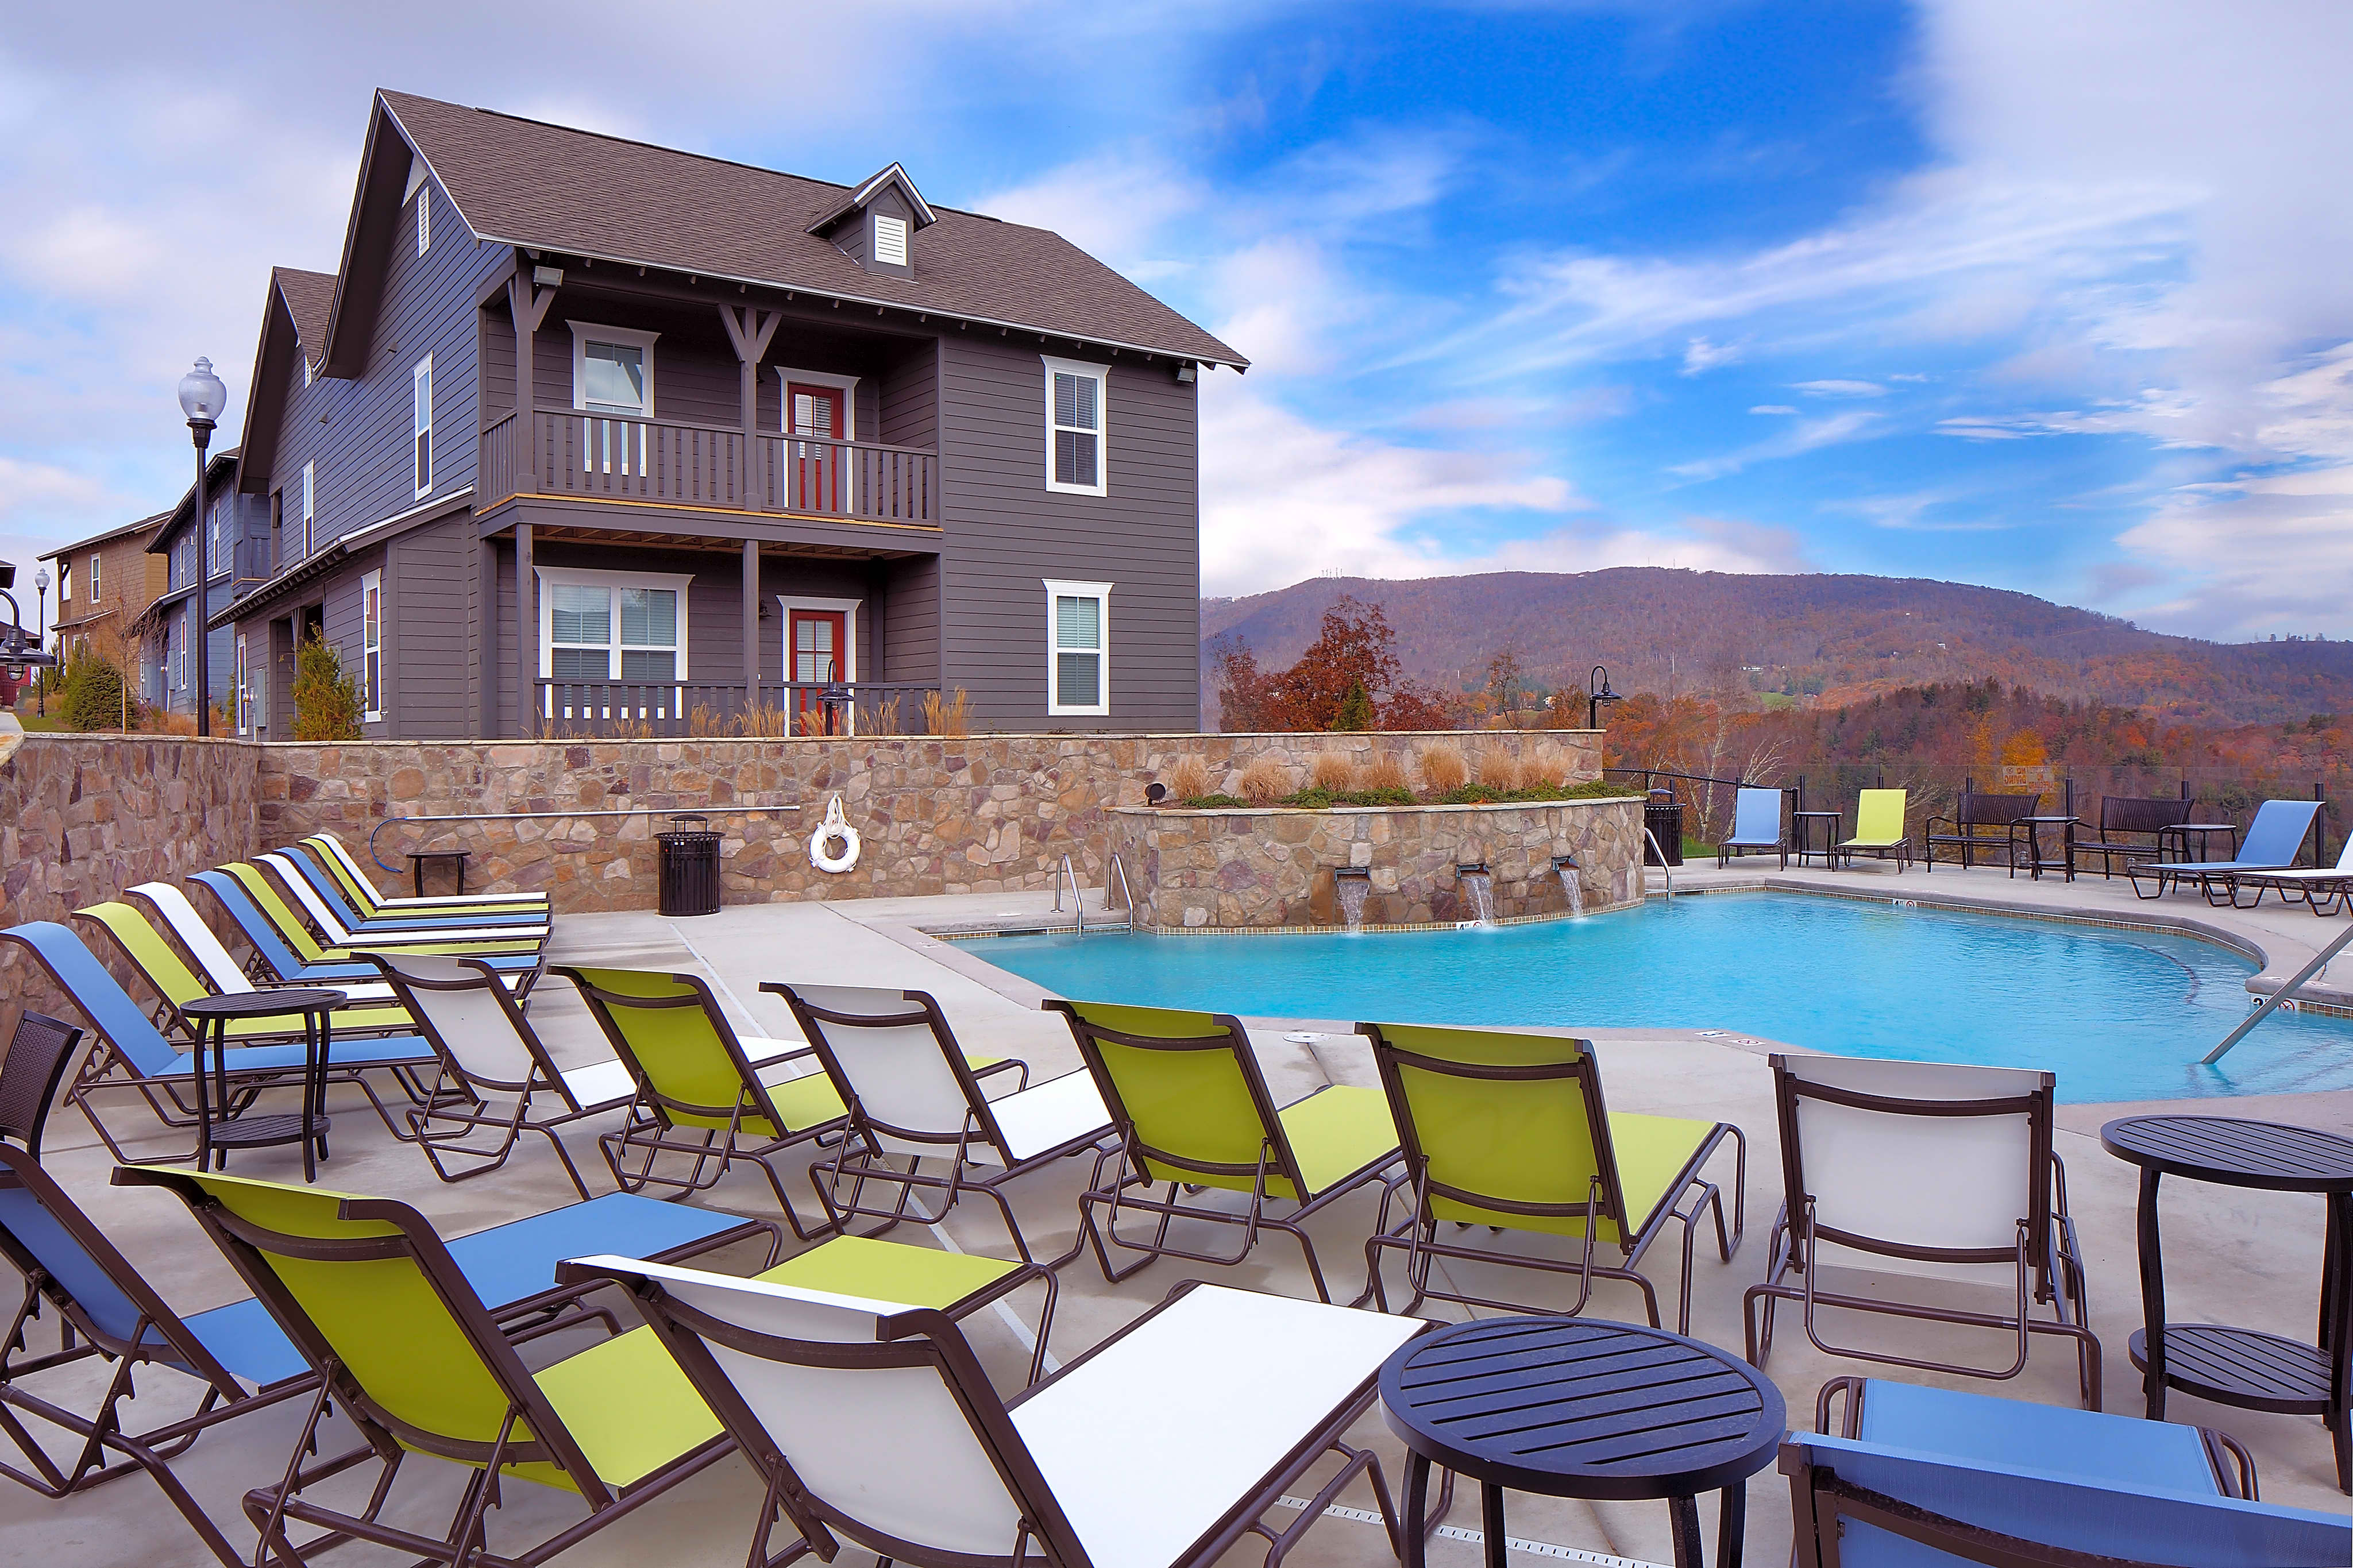 Apartments Near App State The Cottages Of Boone - PER BED LEASE for Appalachian State University Students in Boone, NC